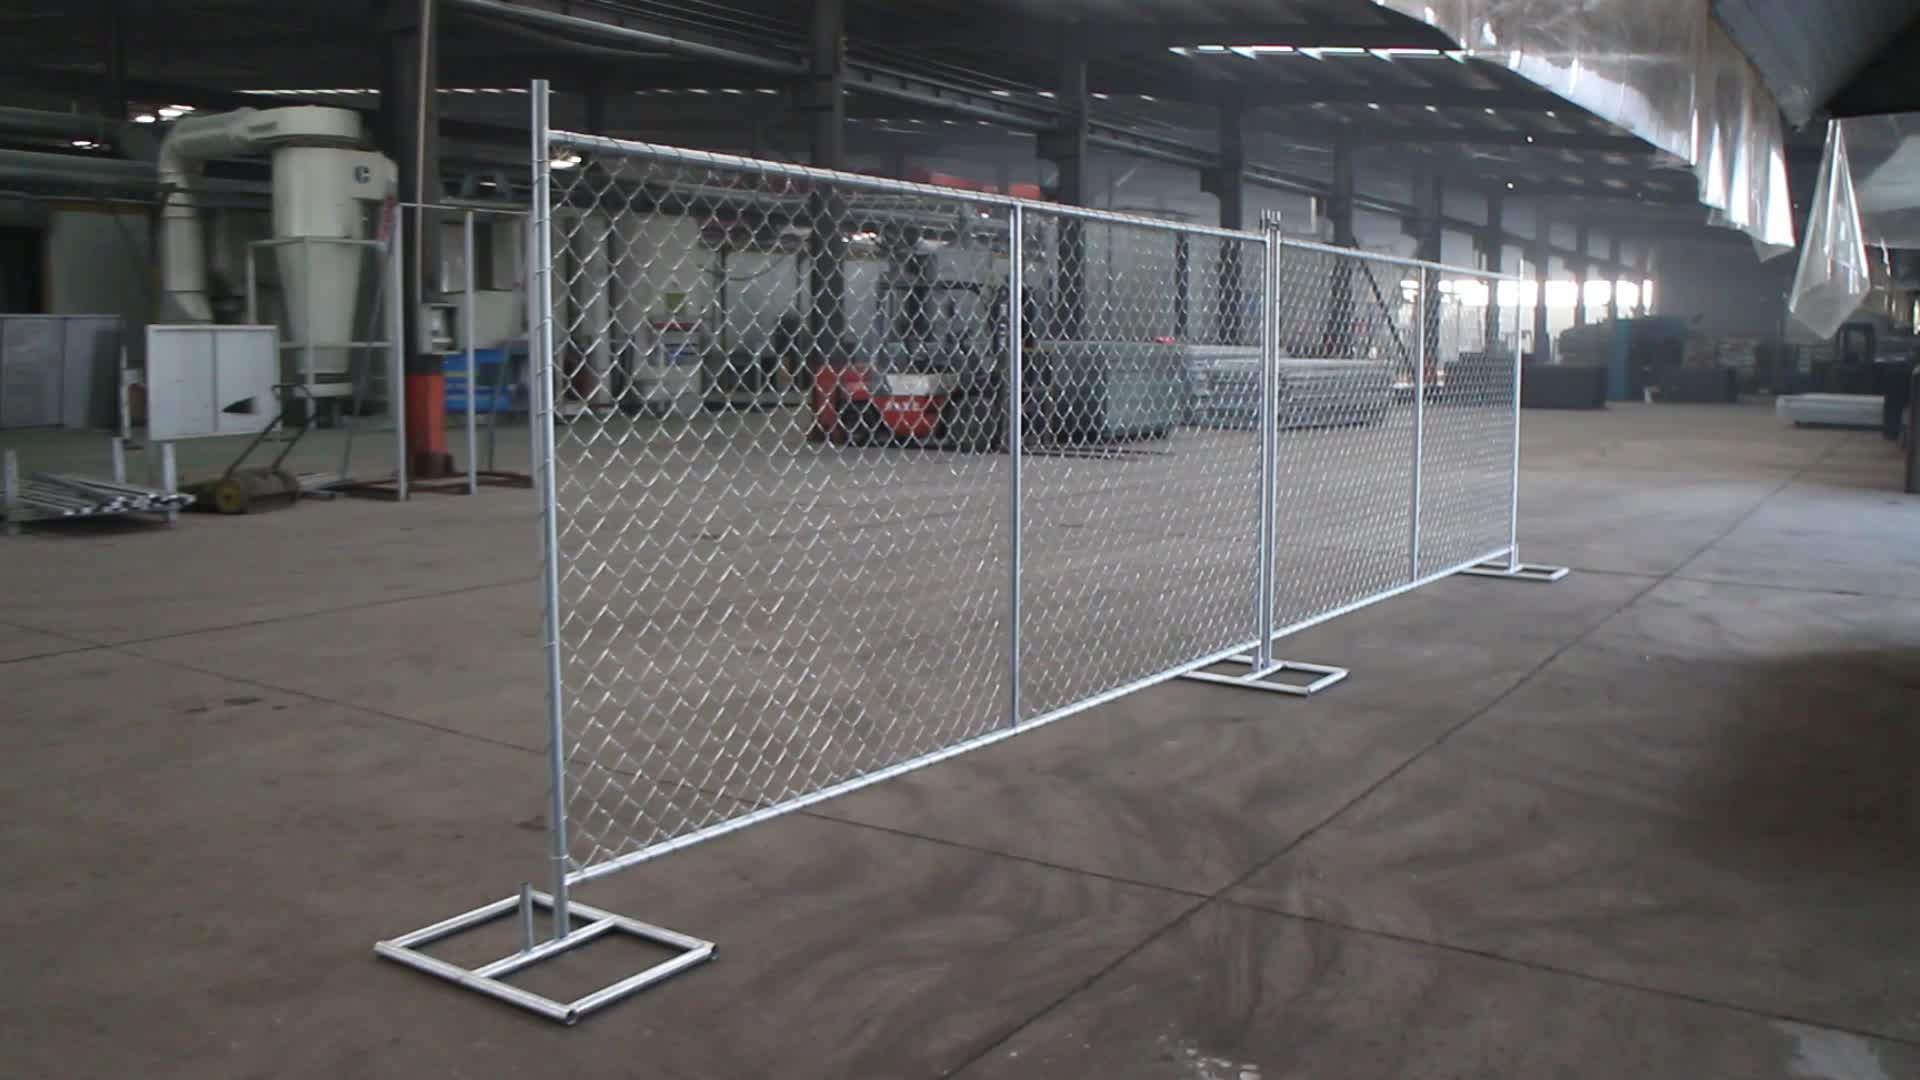 Construction Temp Fence Chain Link Temporary Fencing For